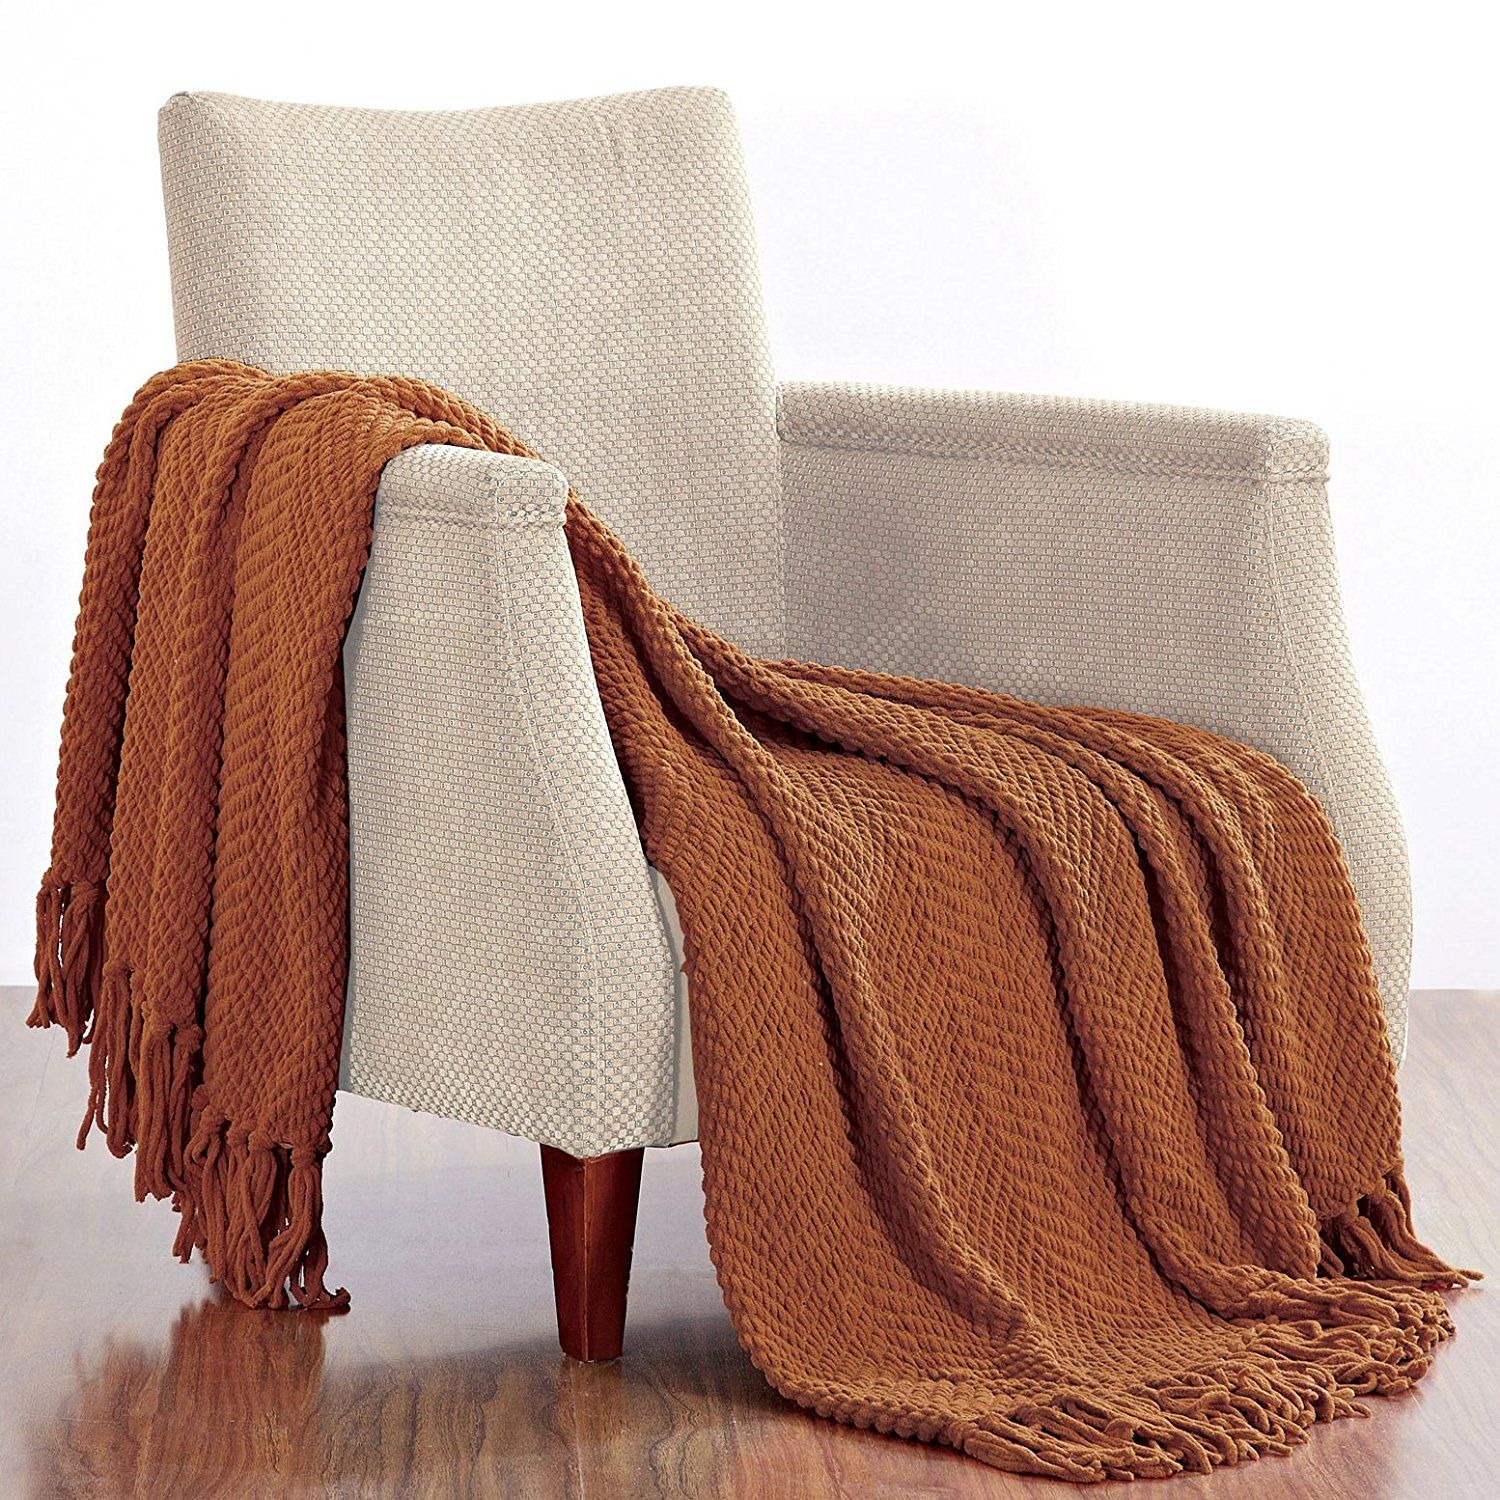 Throw Blankets For Couches Amazing Boon Knitted Tweed Throw Couch Cover Blanket 50 X 60 Rust  Throw Decorating Inspiration